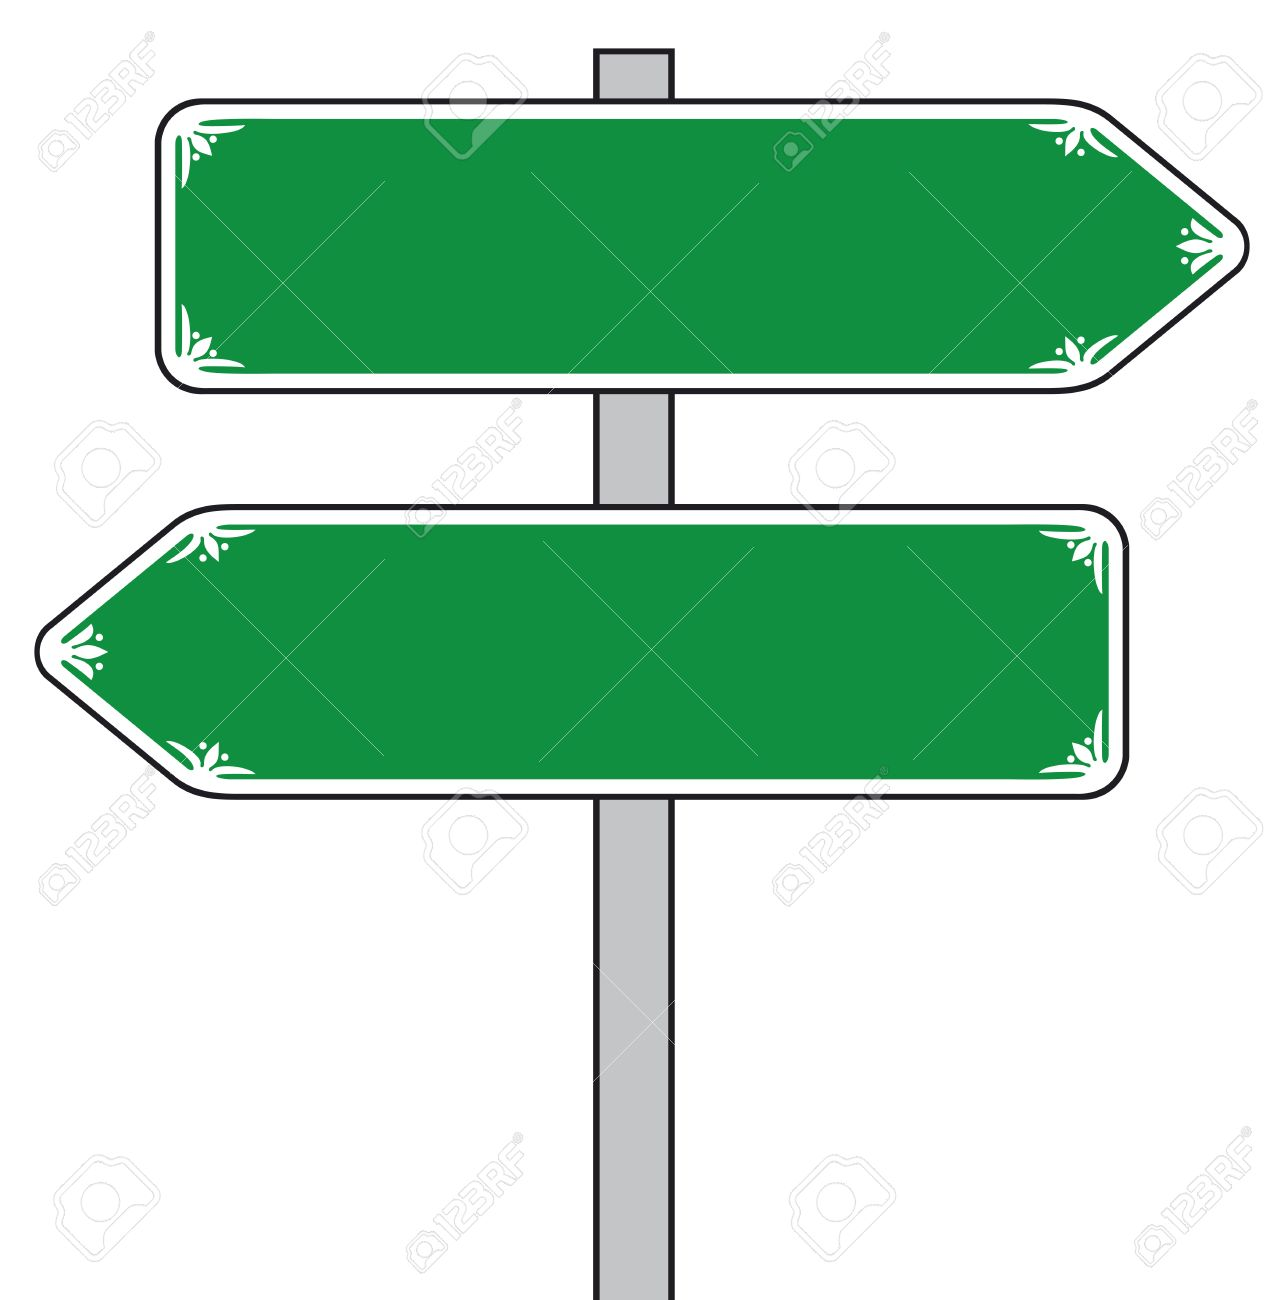 sign direction street sign road sign royalty free cliparts rh 123rf com street sign clip art images street sign clip art black white